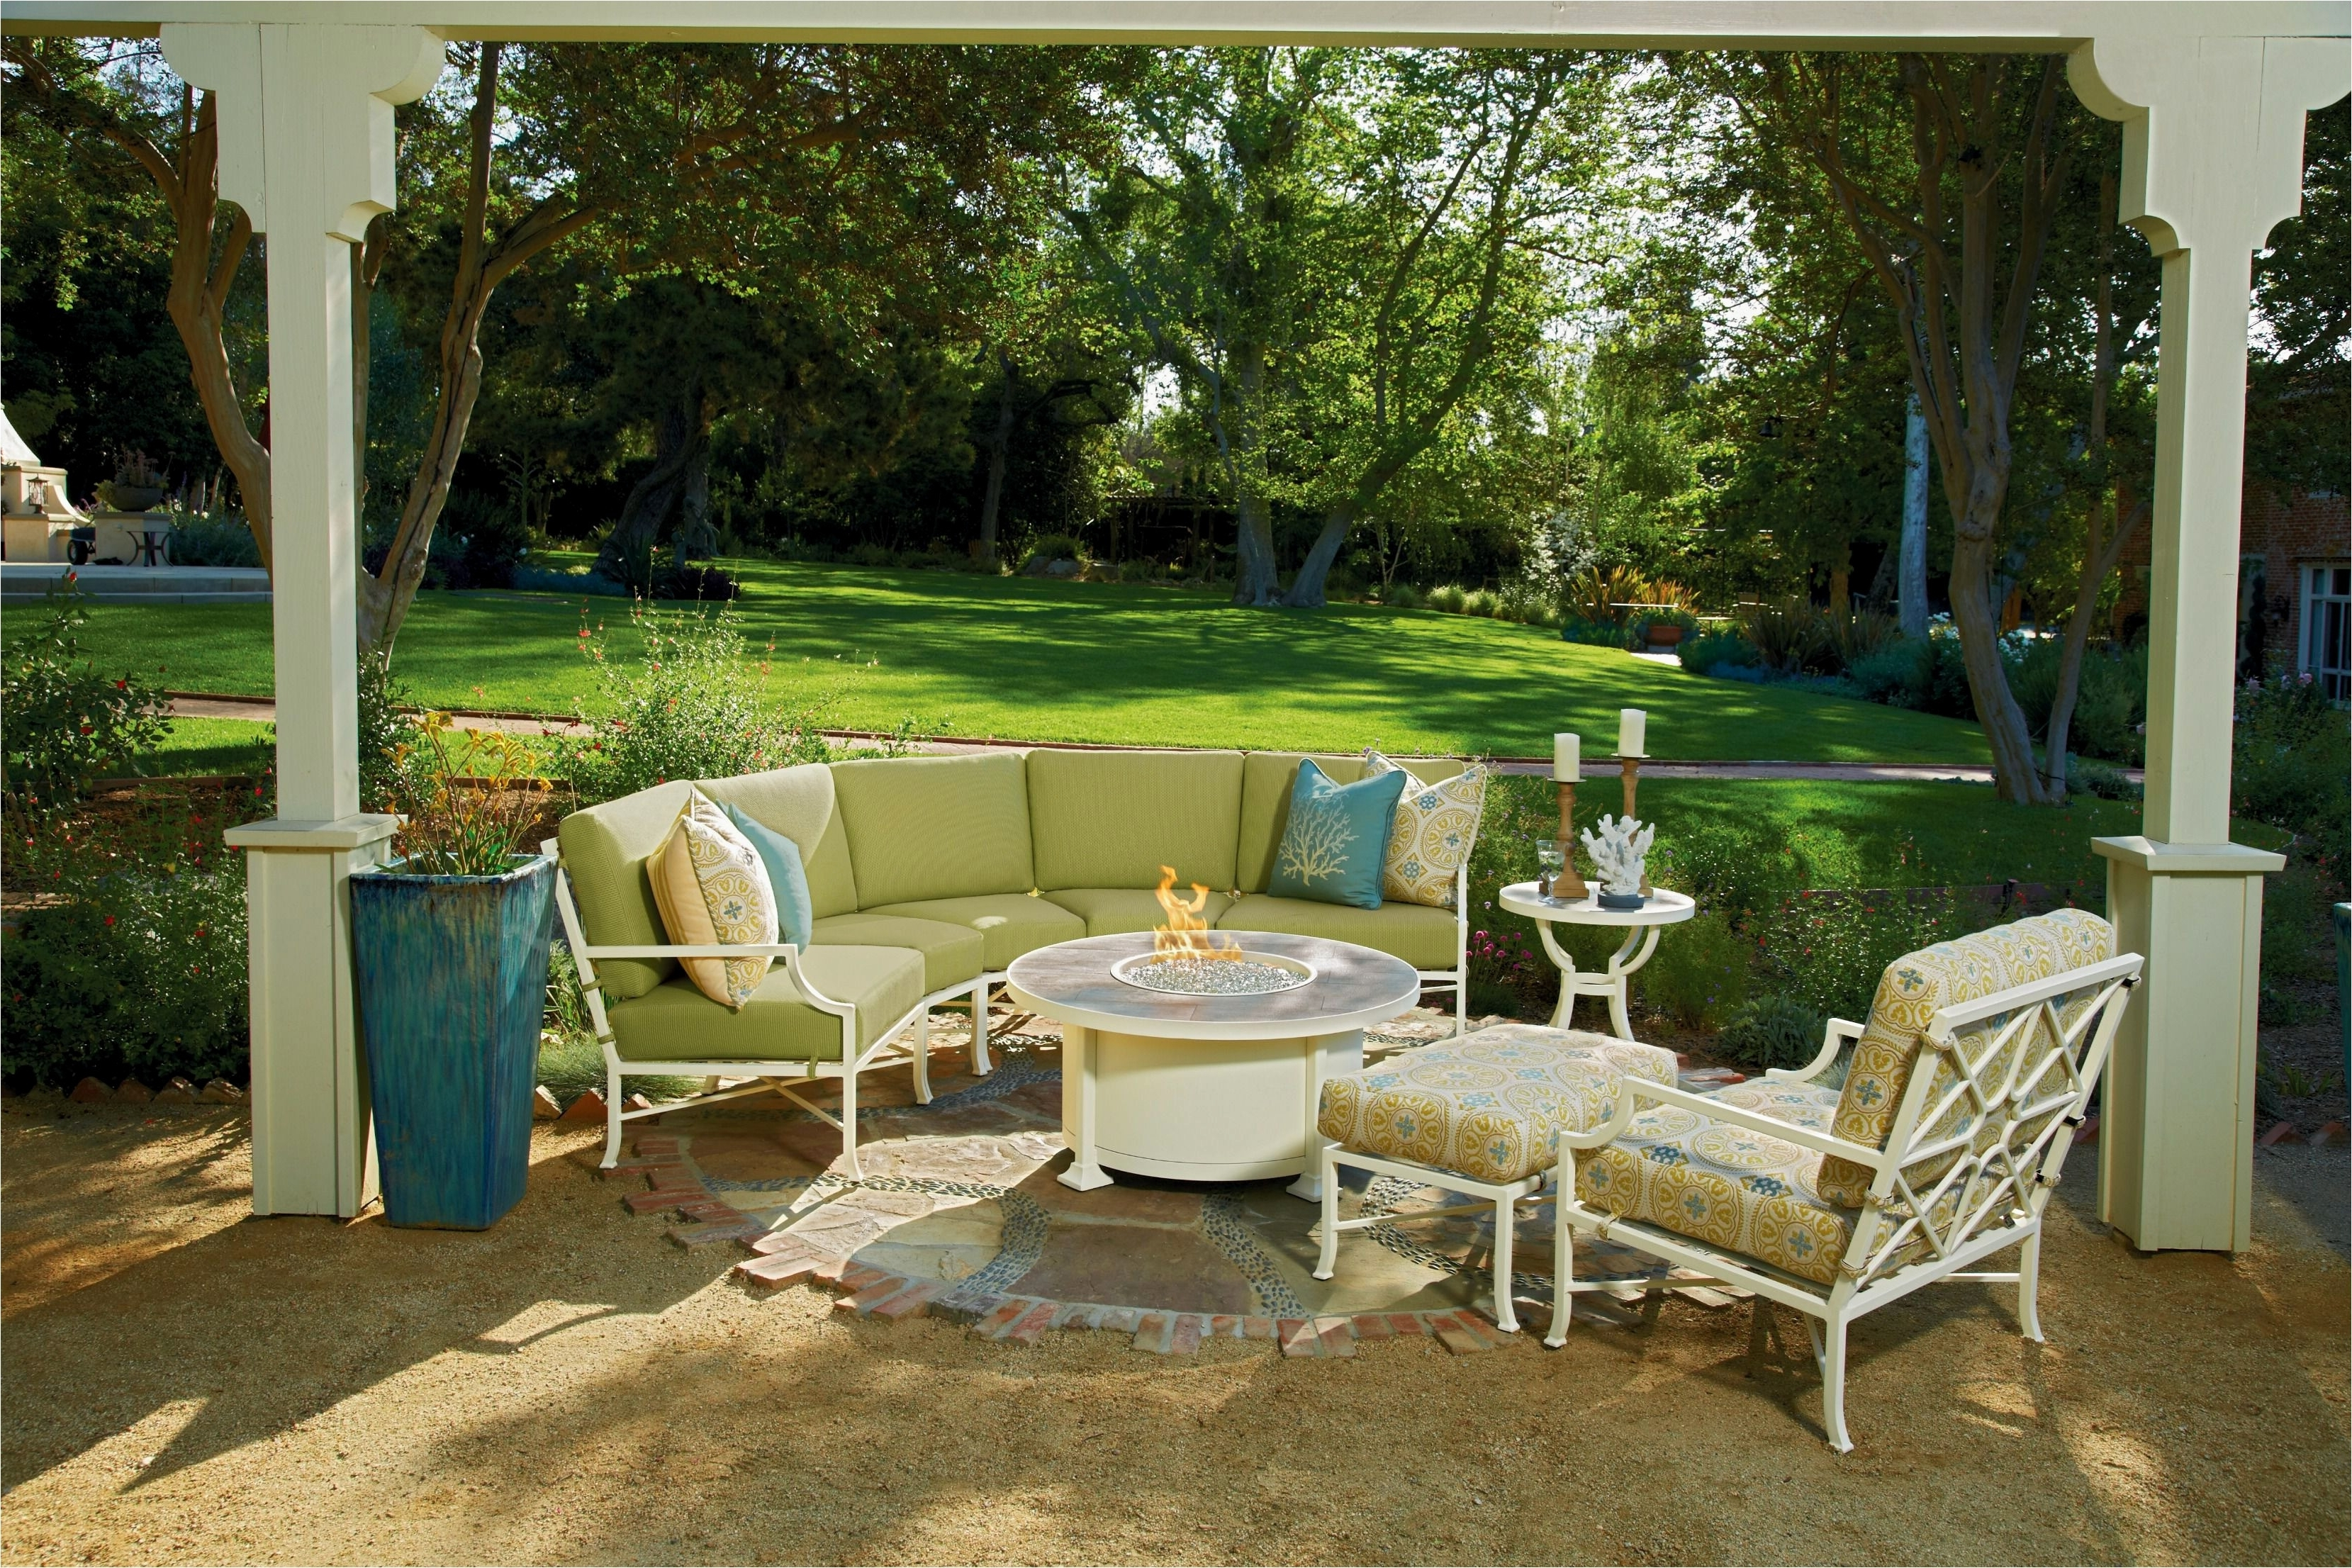 2019 Kohls Patio Umbrellas Best Of Kohl S Patio Furniture Sets Image In Kohl's Patio Conversation Sets (View 6 of 20)